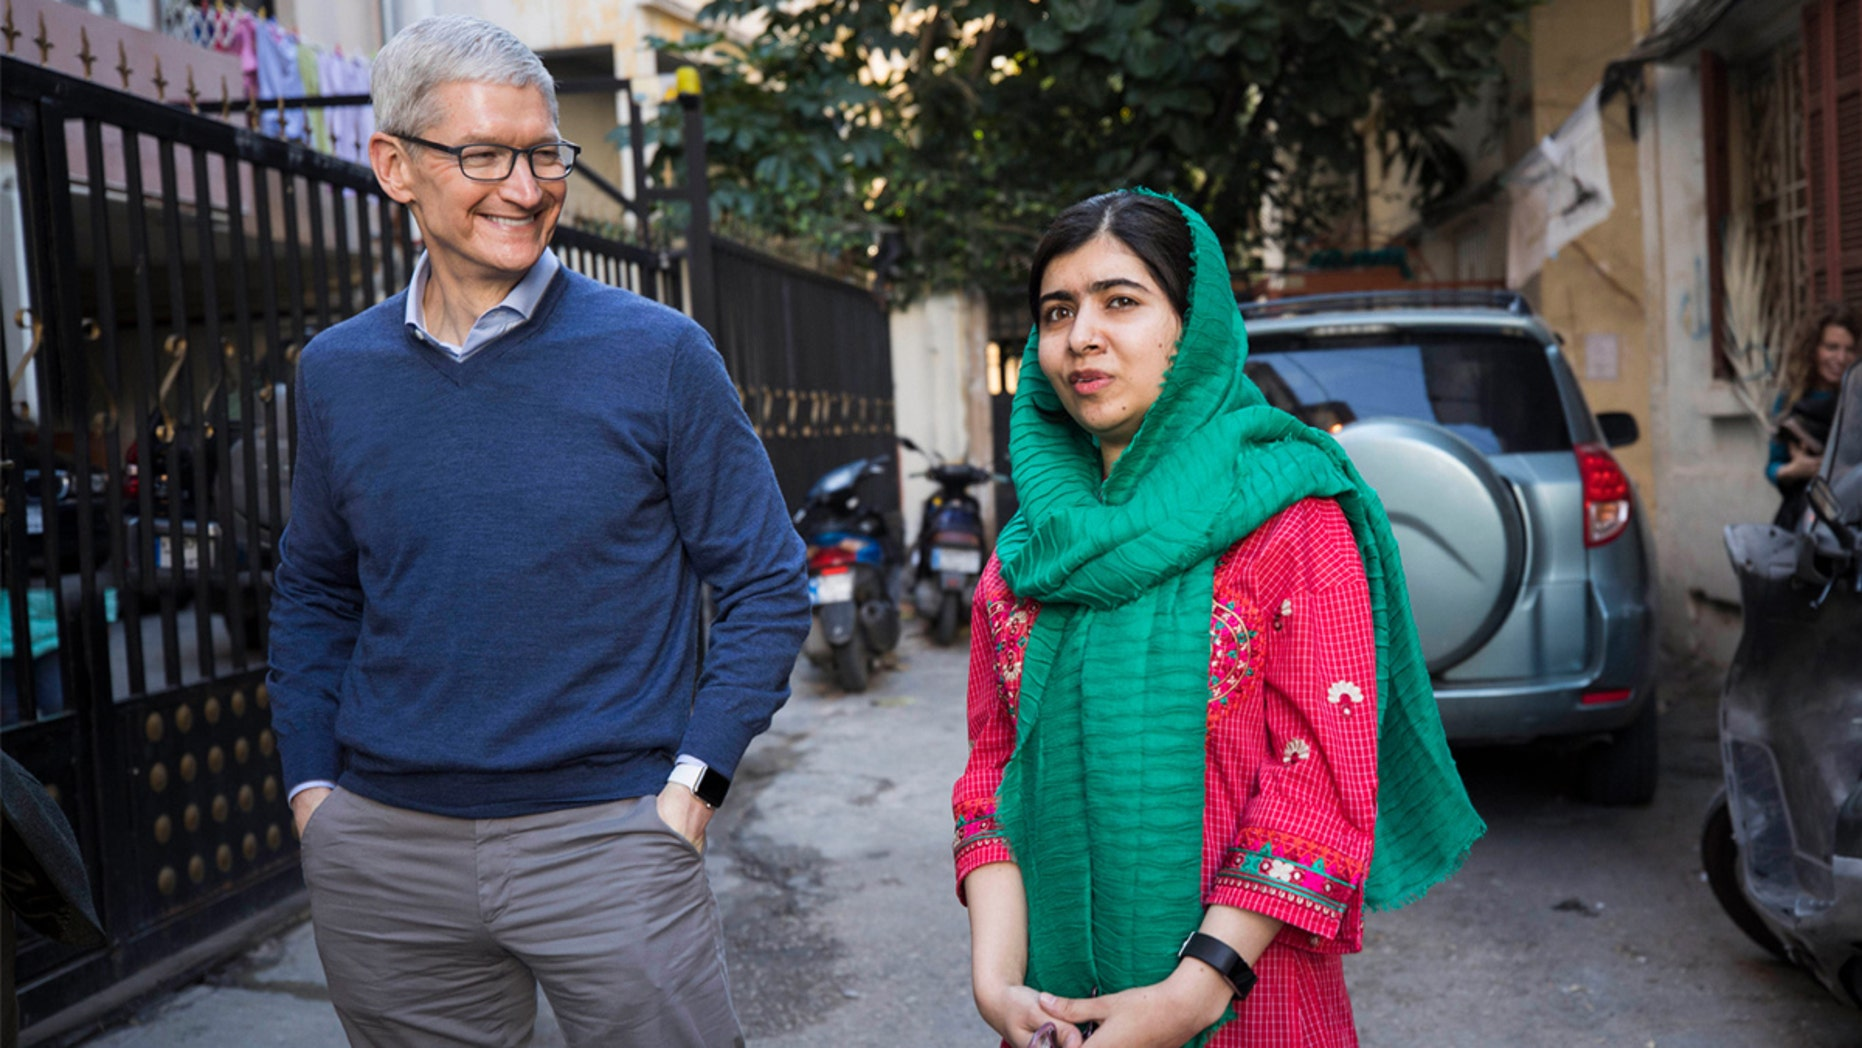 Apple CEO Tim Cook and Malala Yousafzai are seen in Beirut, Lebanon